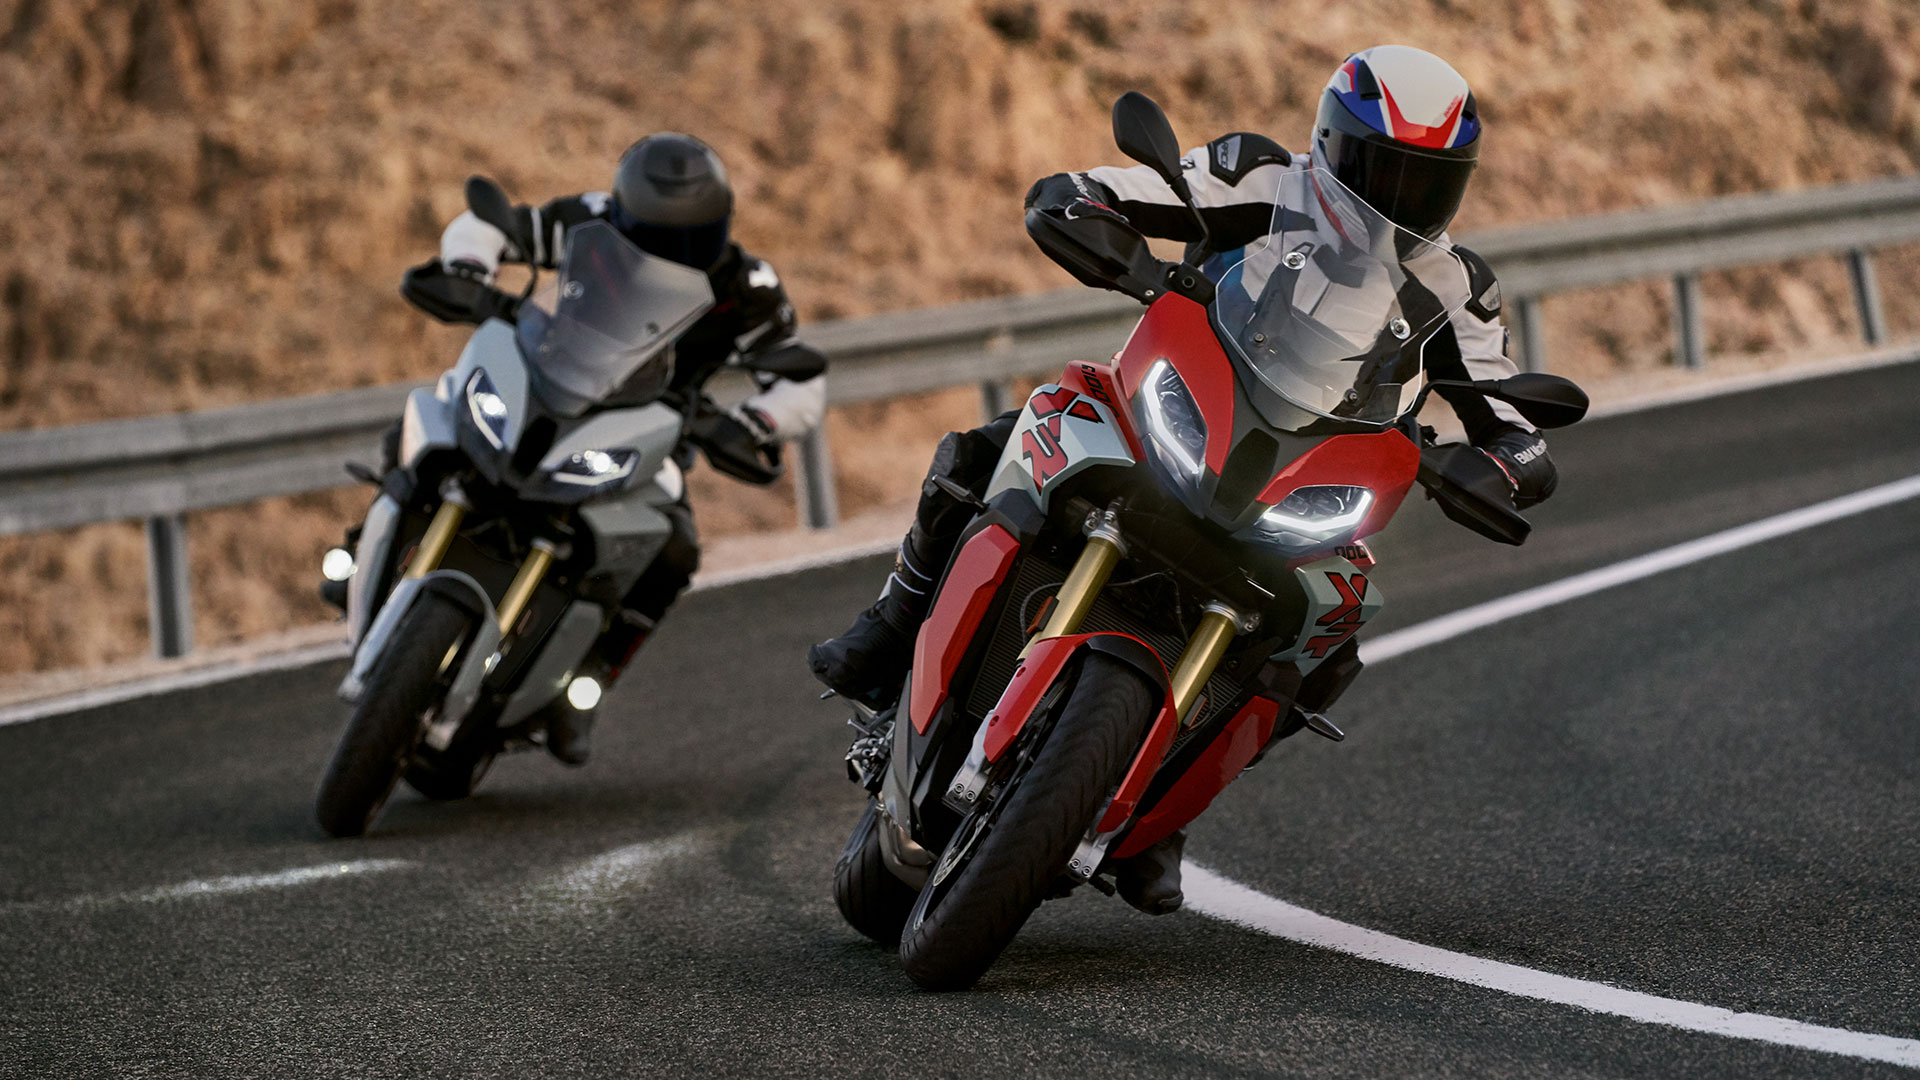 2020 BMW S 1000 XR Front Riding Red and Black Lineup Exterior Picture